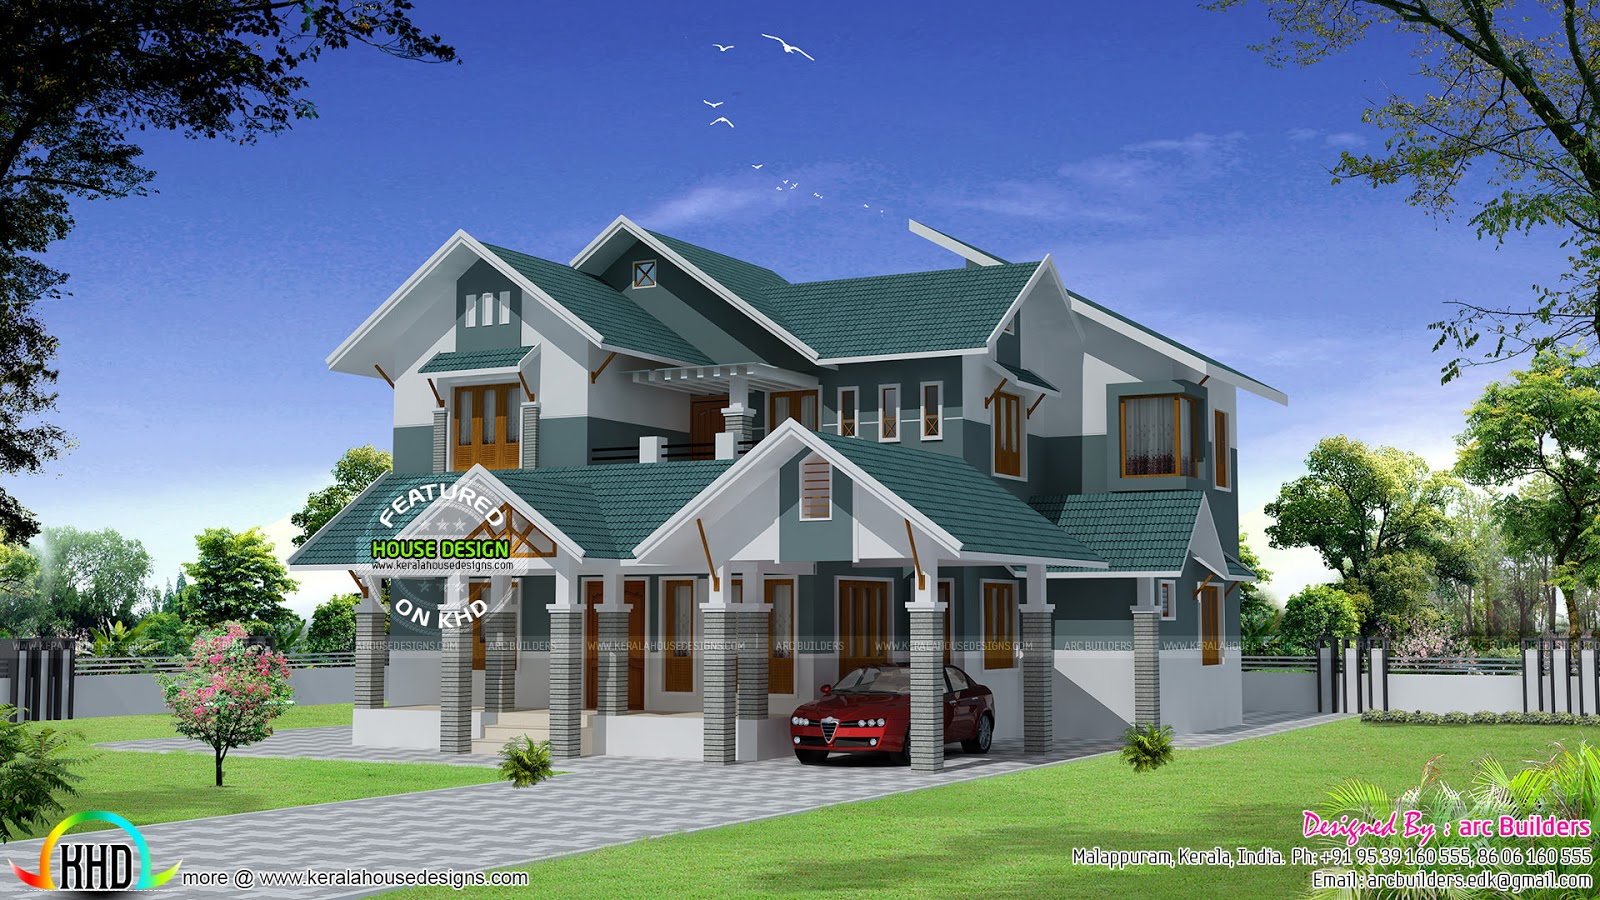 Sloping roof modern home design kerala home design and Modern roof design